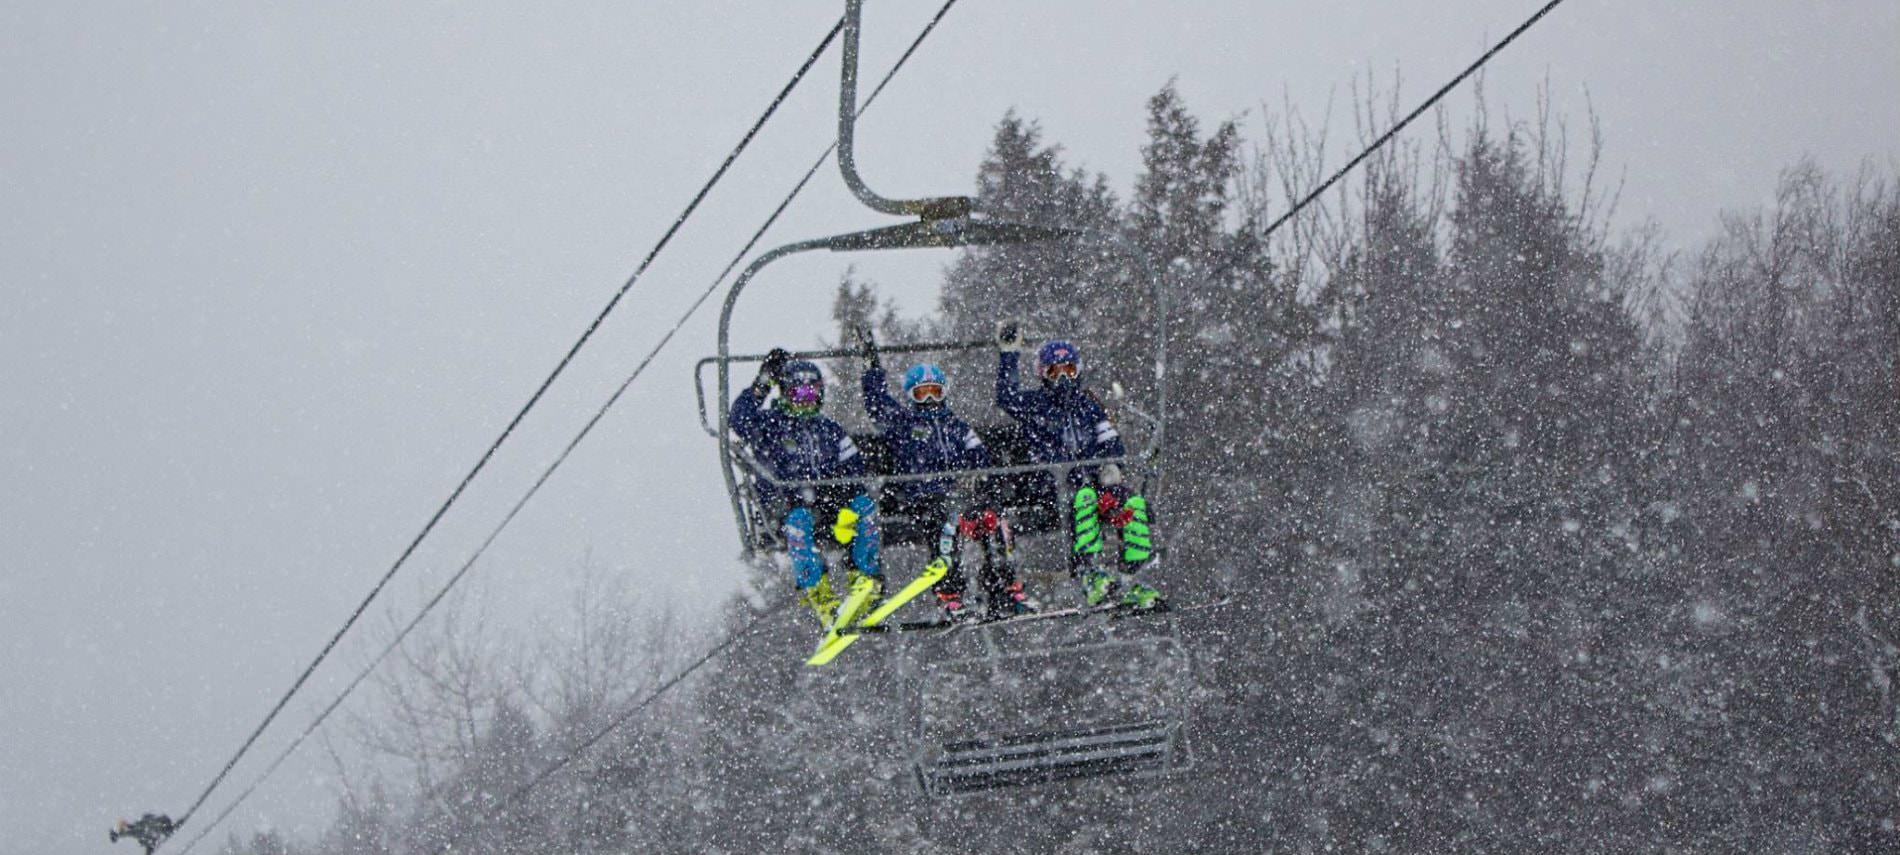 Three people in ski lift waving with snow falling